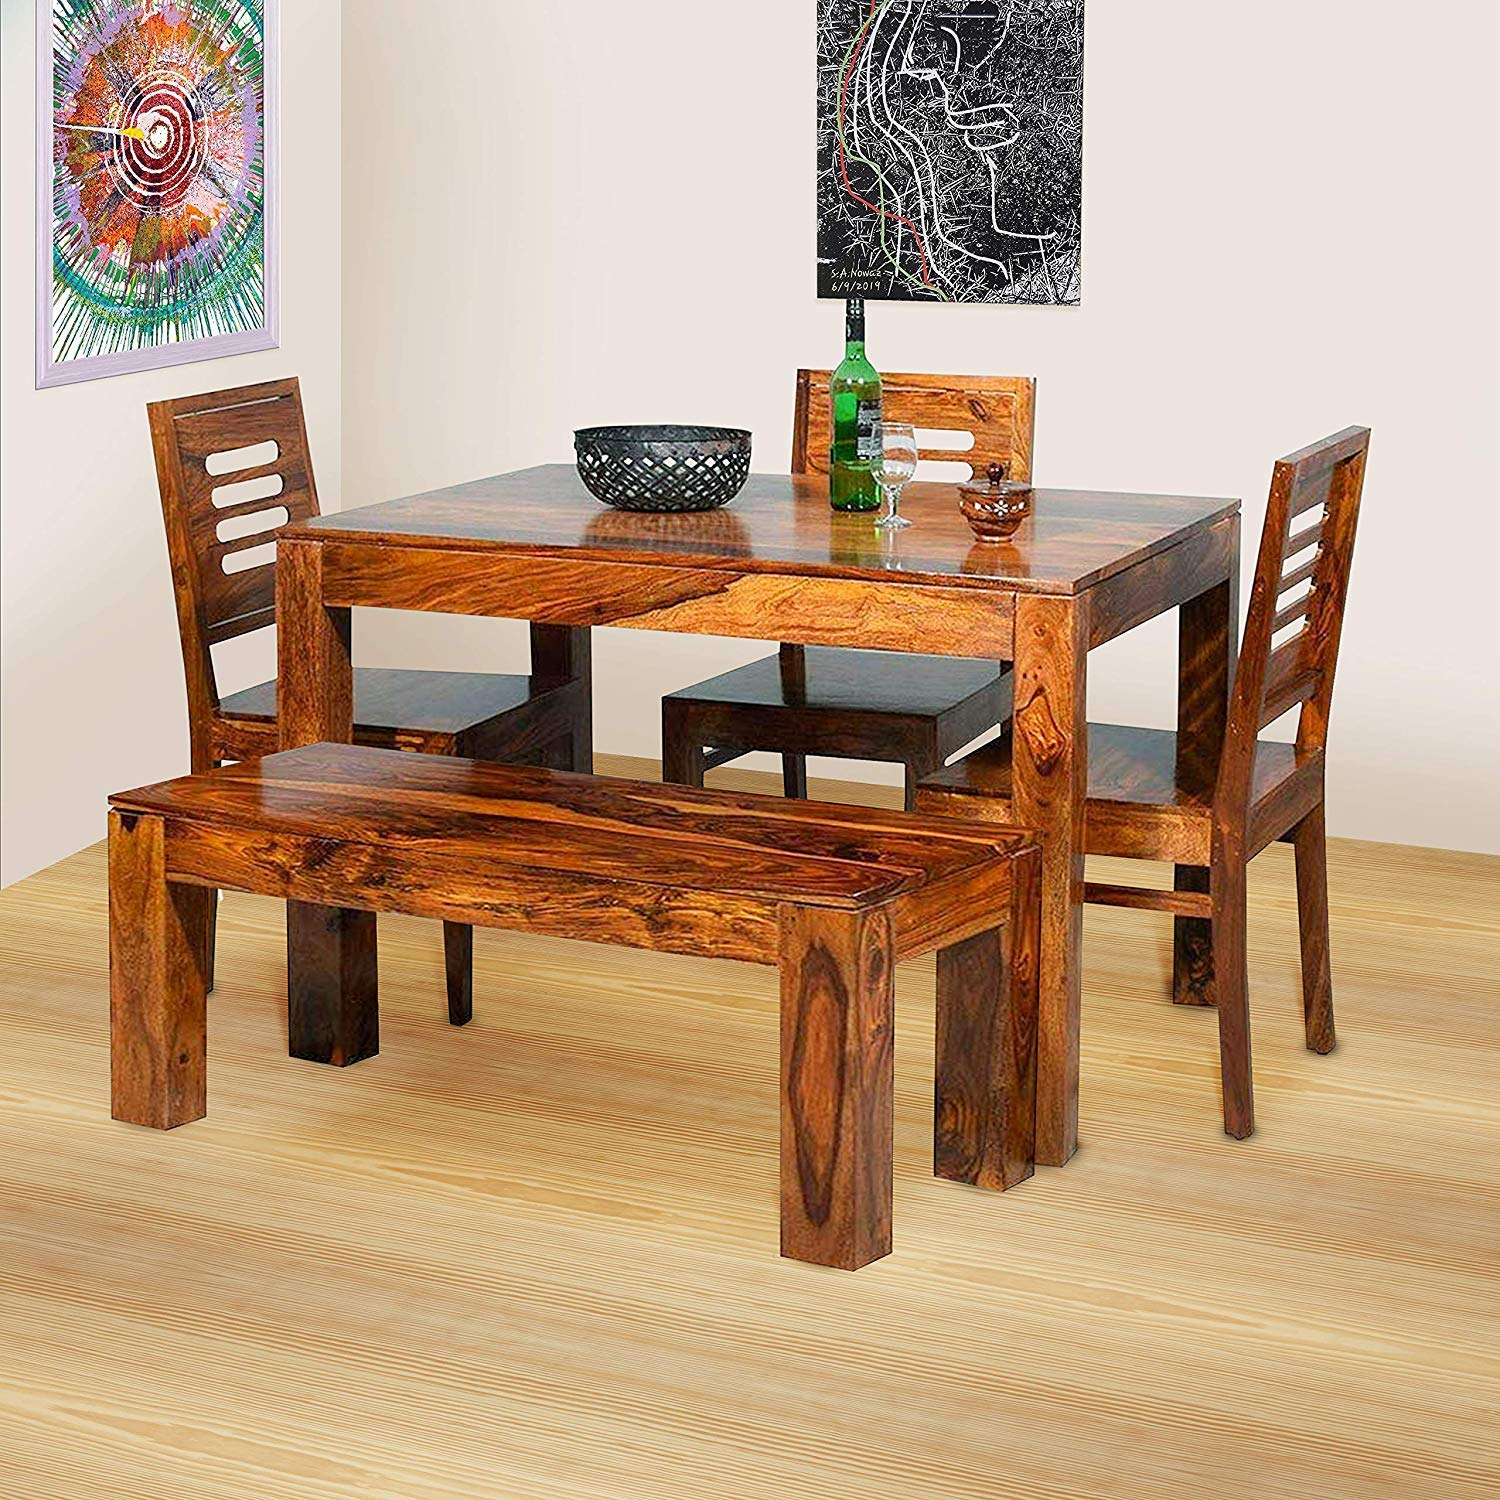 3 chair dining table